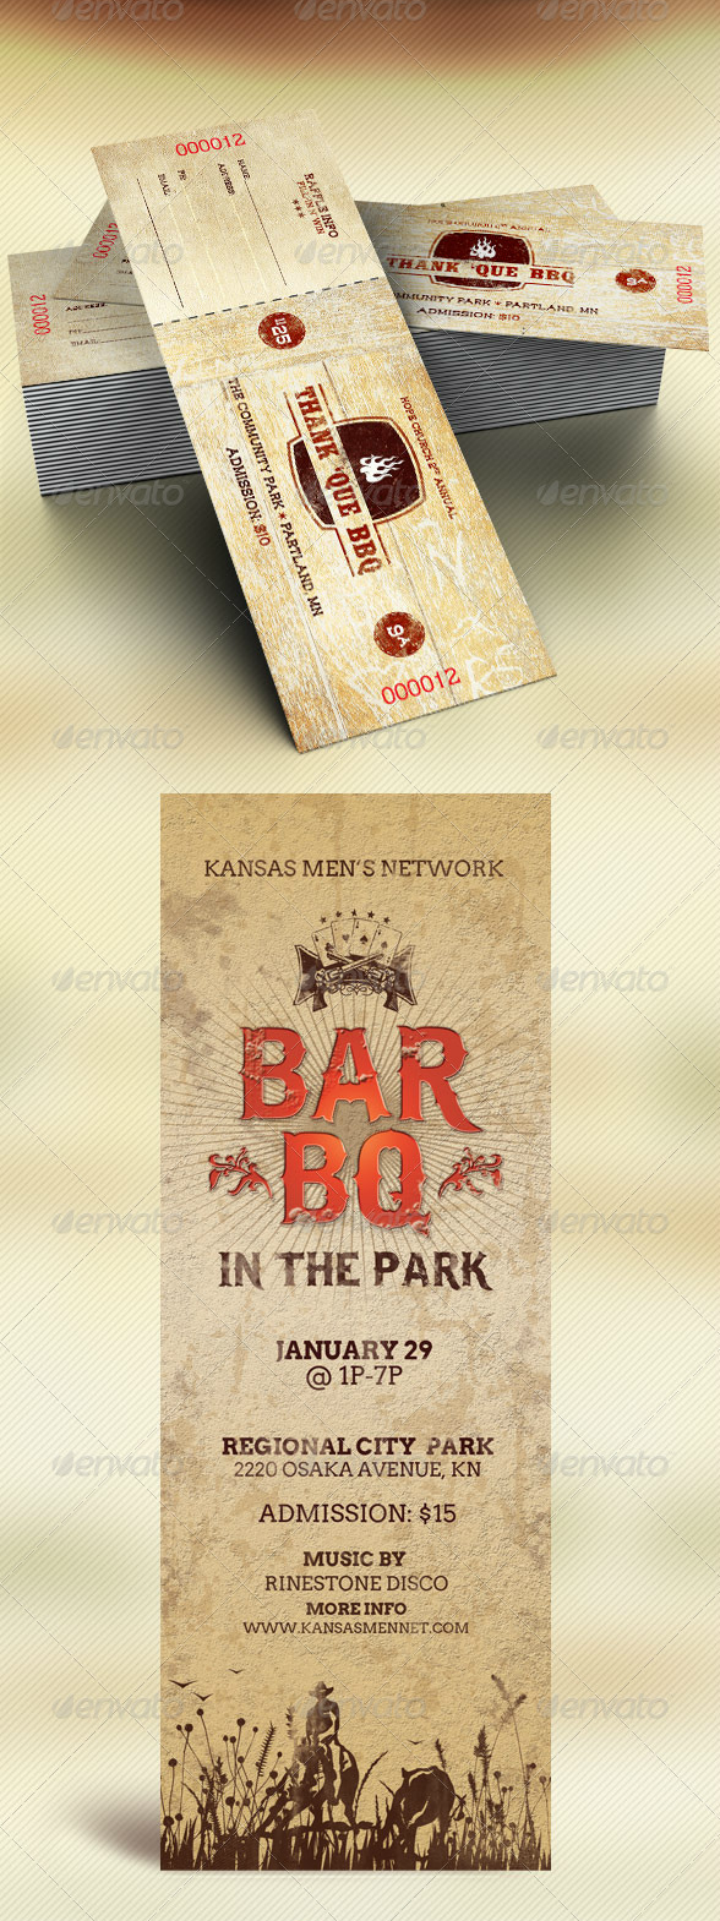 barbecue restaurant flyer and ticket template bundle